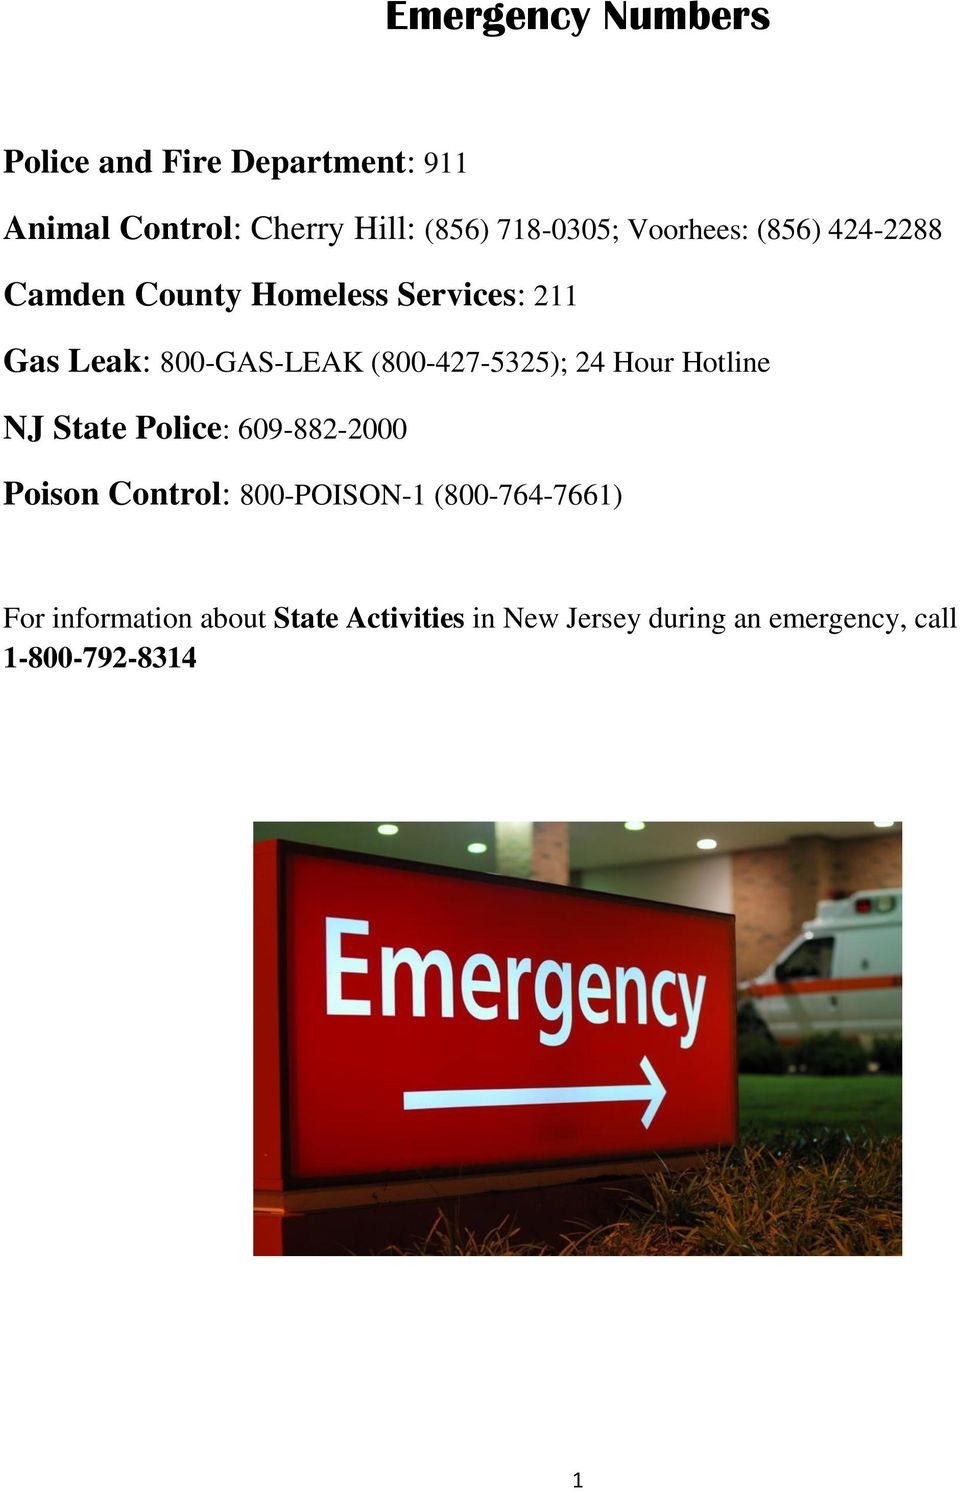 (800-427-5325); 24 Hour Hotline NJ State Police: 609-882-2000 Poison Control: 800-POISON-1